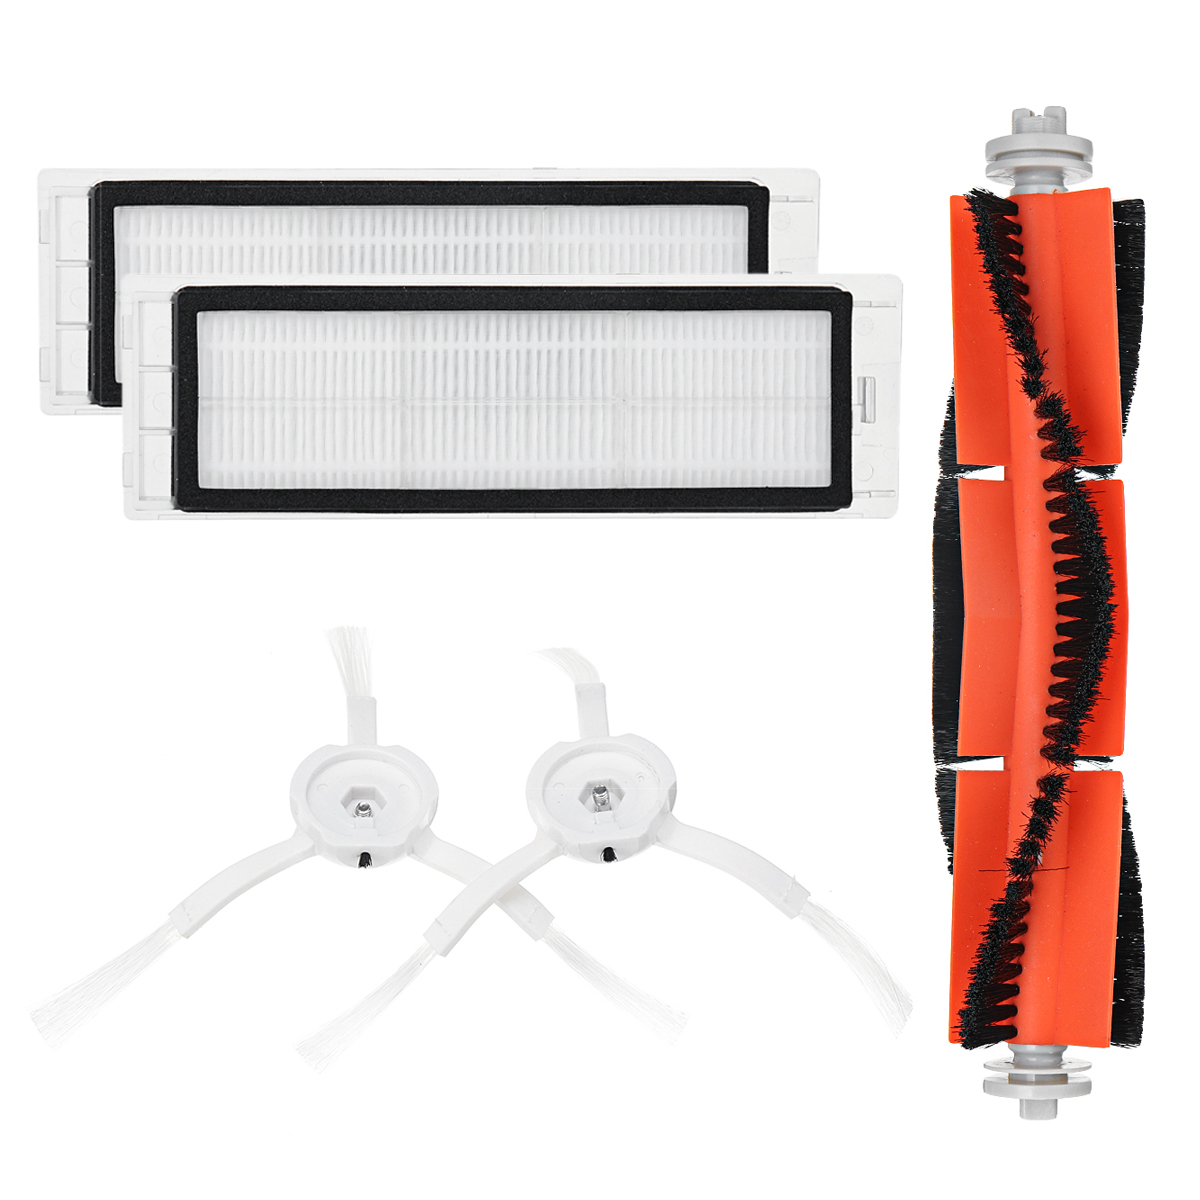 Robot Vacuum Cleaner Replacements for Xiaomi Roborock Mi Robot Kits 2pc Filter 2pcs Side Brush 1pc Main Brush 1pc Virtual Magnetic Wall